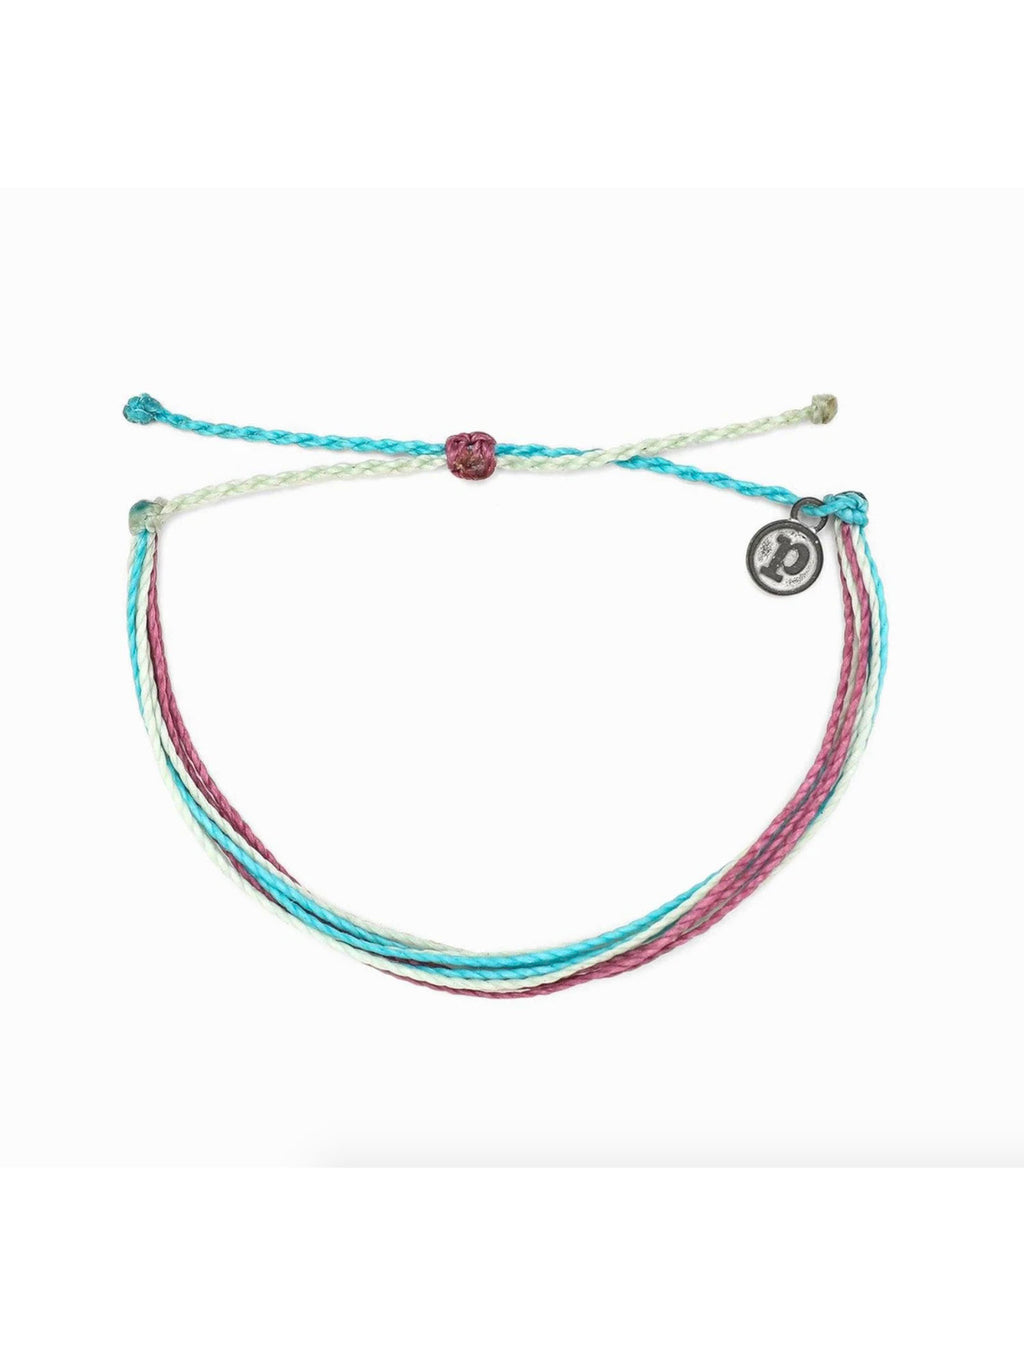 Pura Vida Original Bracelet in Good Vibes